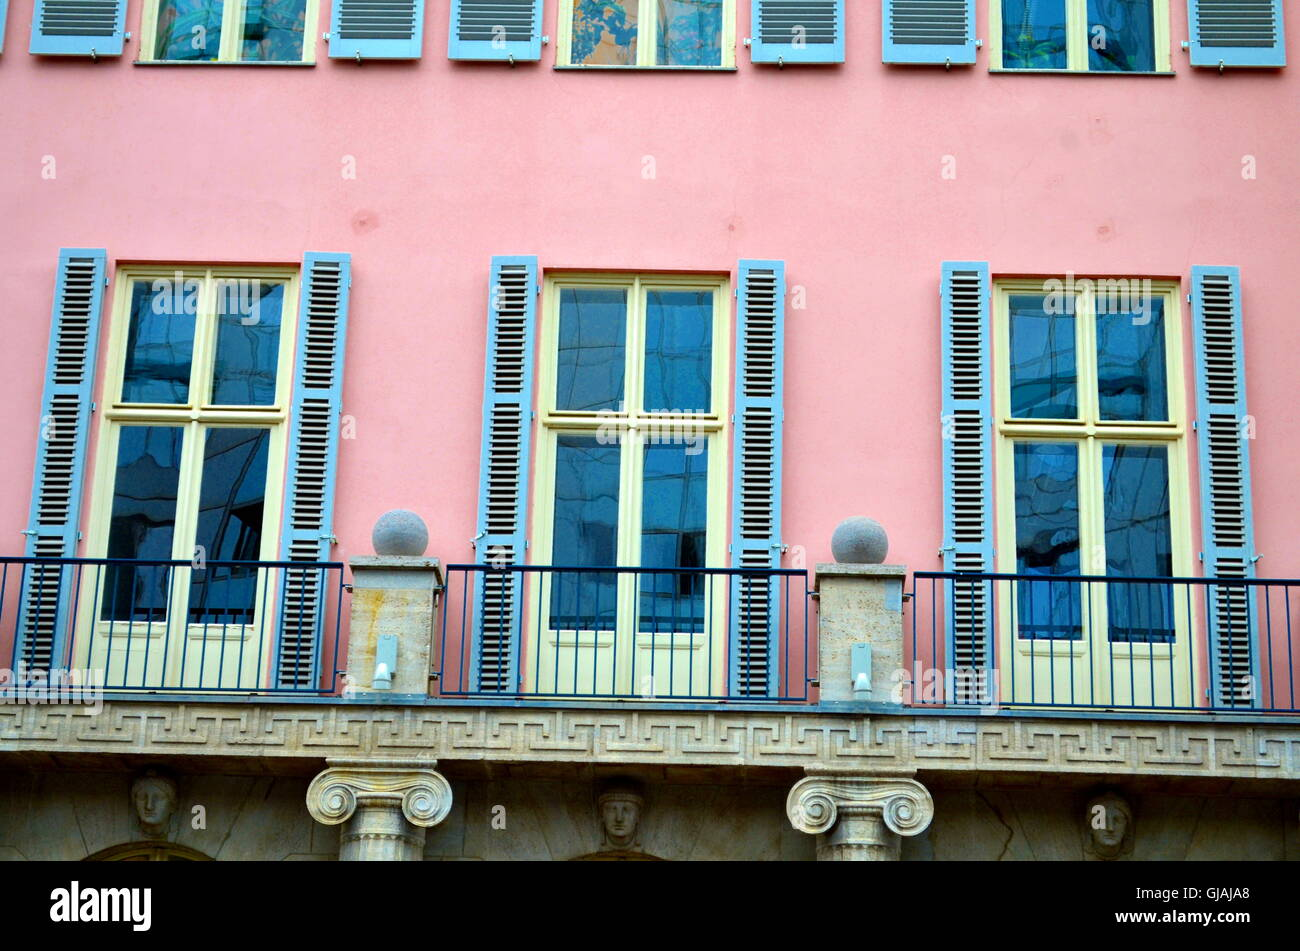 neoclassicism with windows facade in central berlin - Stock Image